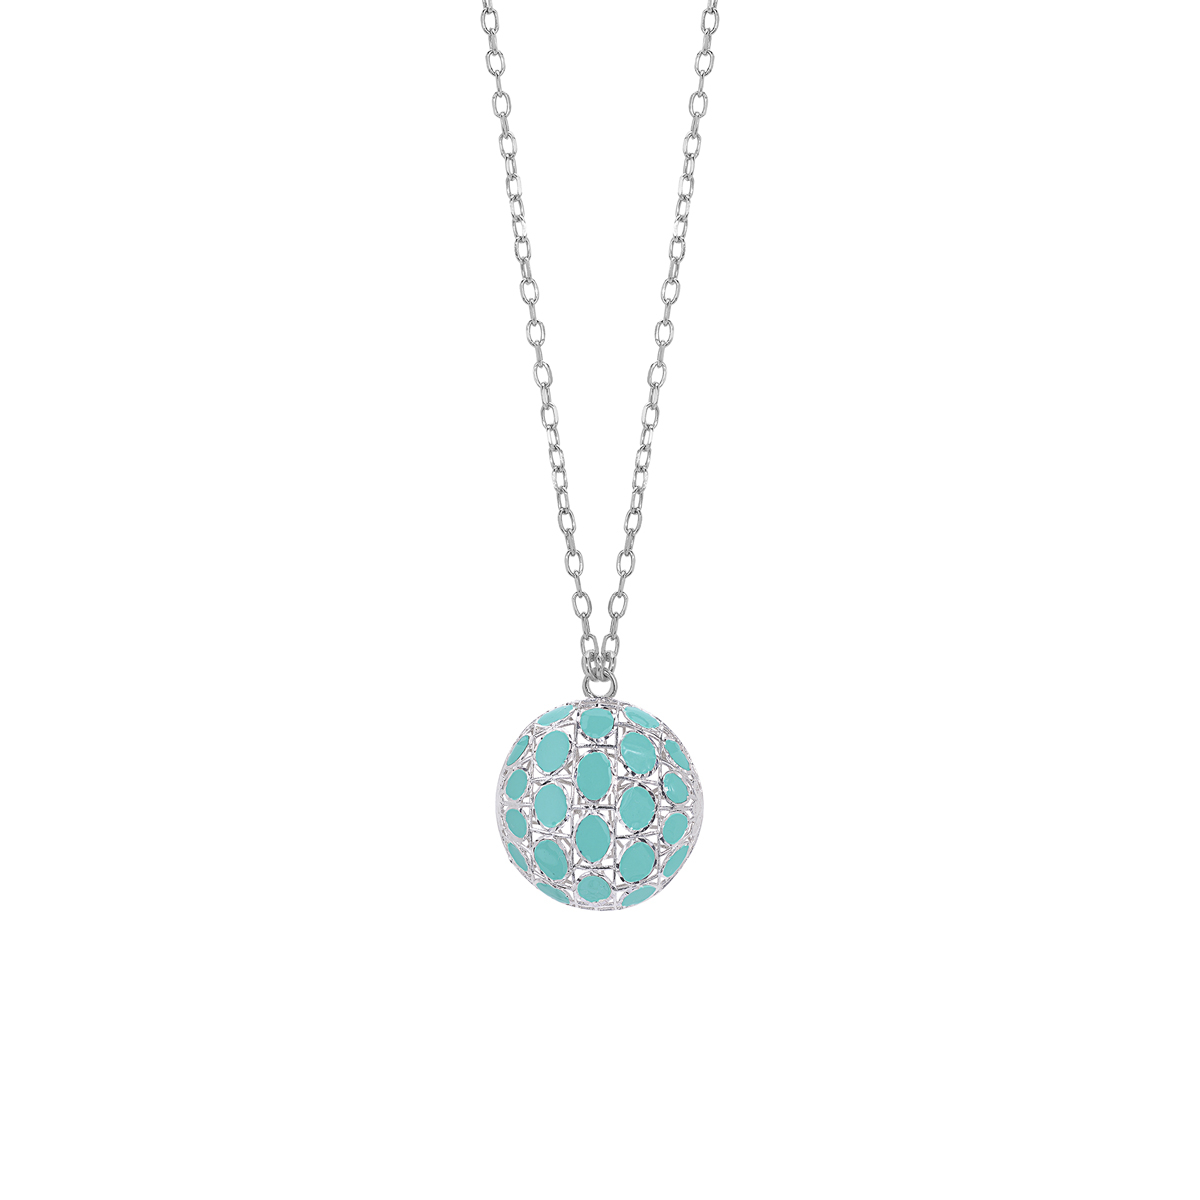 Rhodium-Plated Silver Necklace